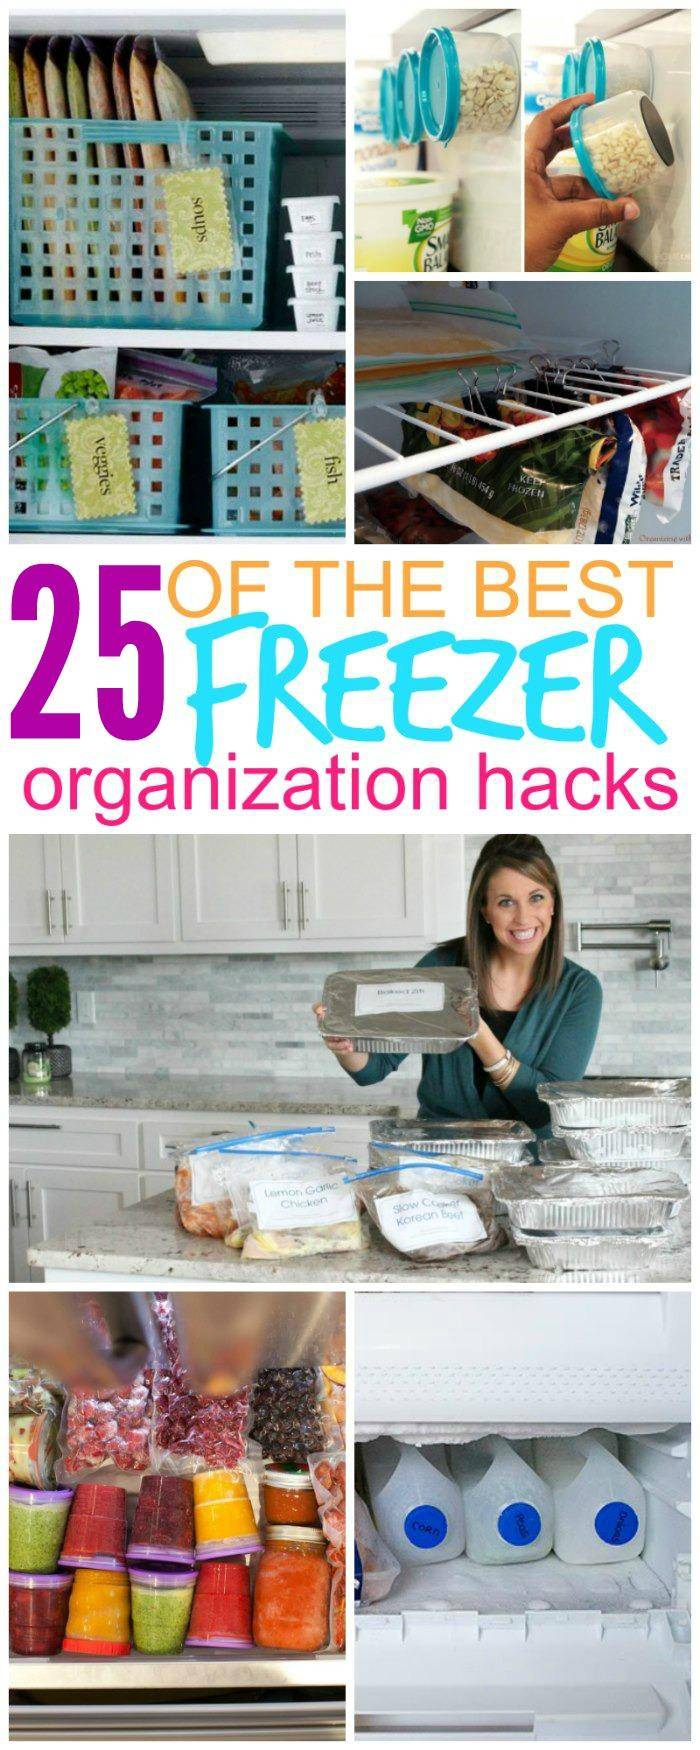 25 Ways to Organize Your Freezer That Will Save Your Sanity